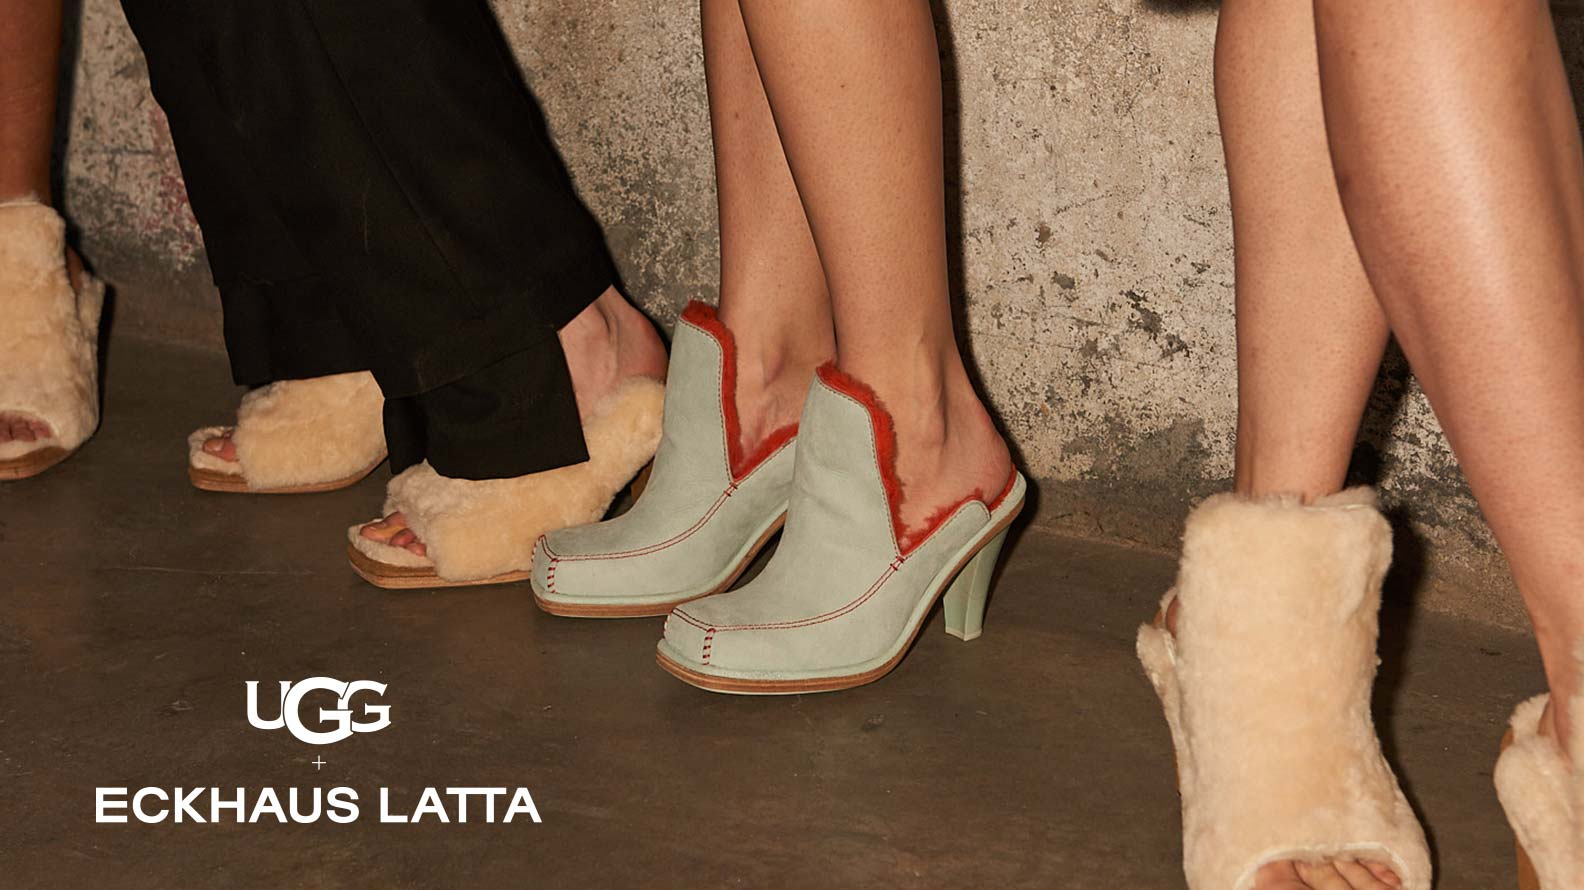 Models wearing Eckhaus Latta and UGG collaboration shoes.